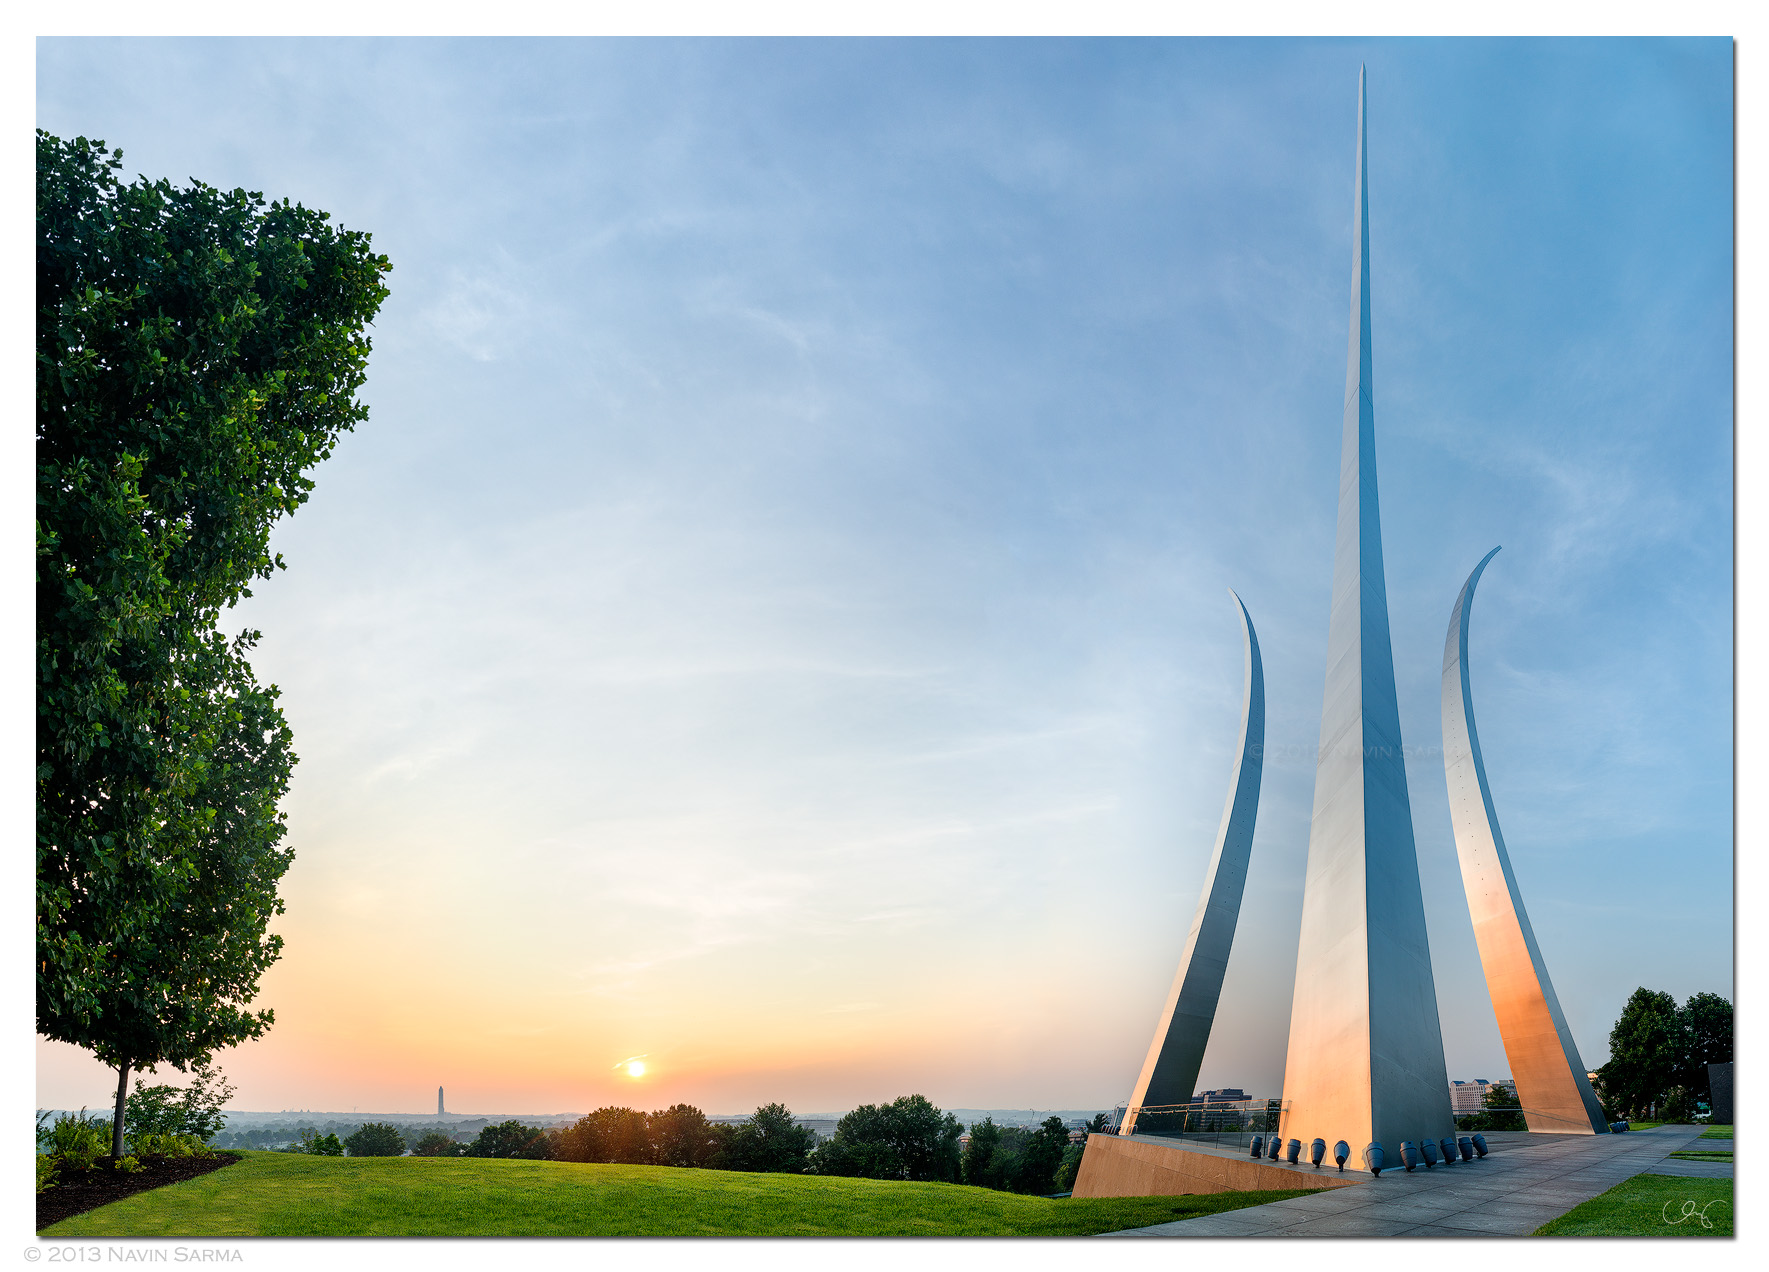 A full view of the Air Force Memorial at Sunrise